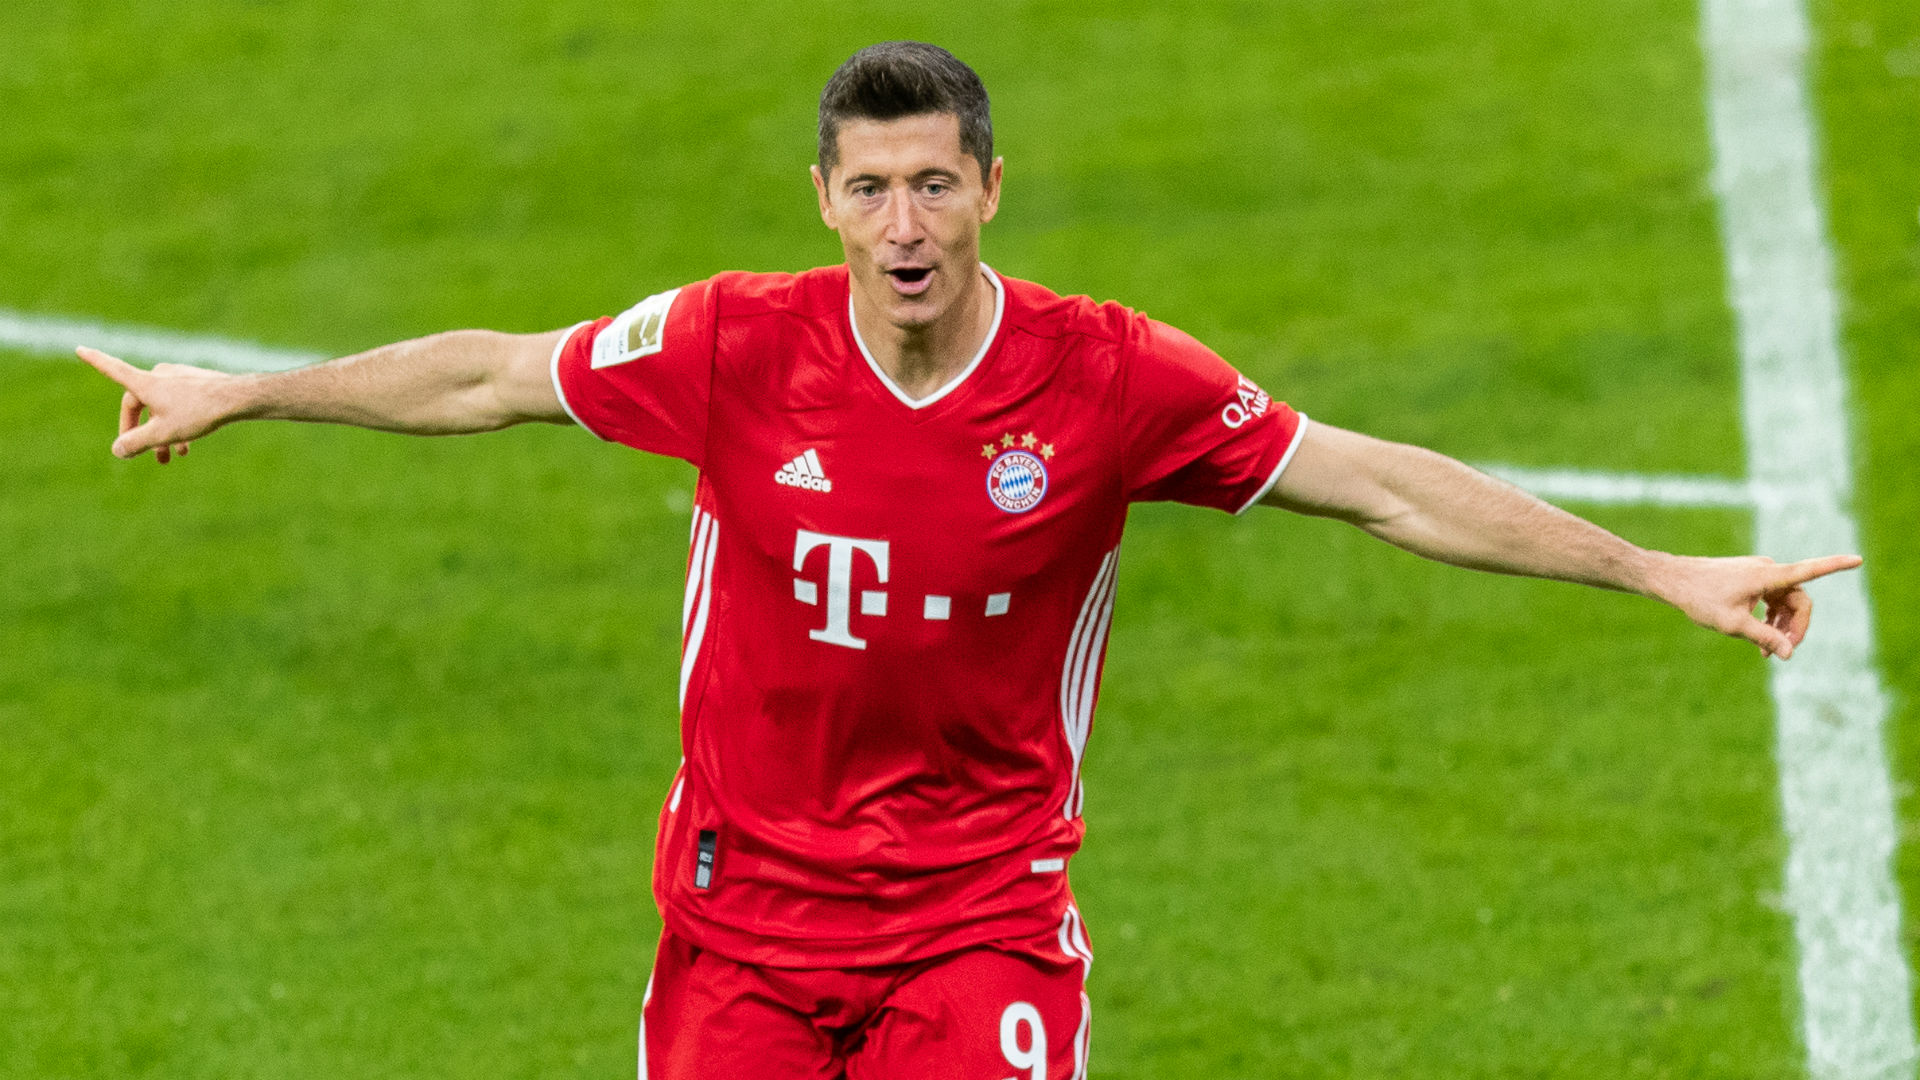 Lewandowski, Mueller Score a Brace Each as Bayern Munich Crush Arminia